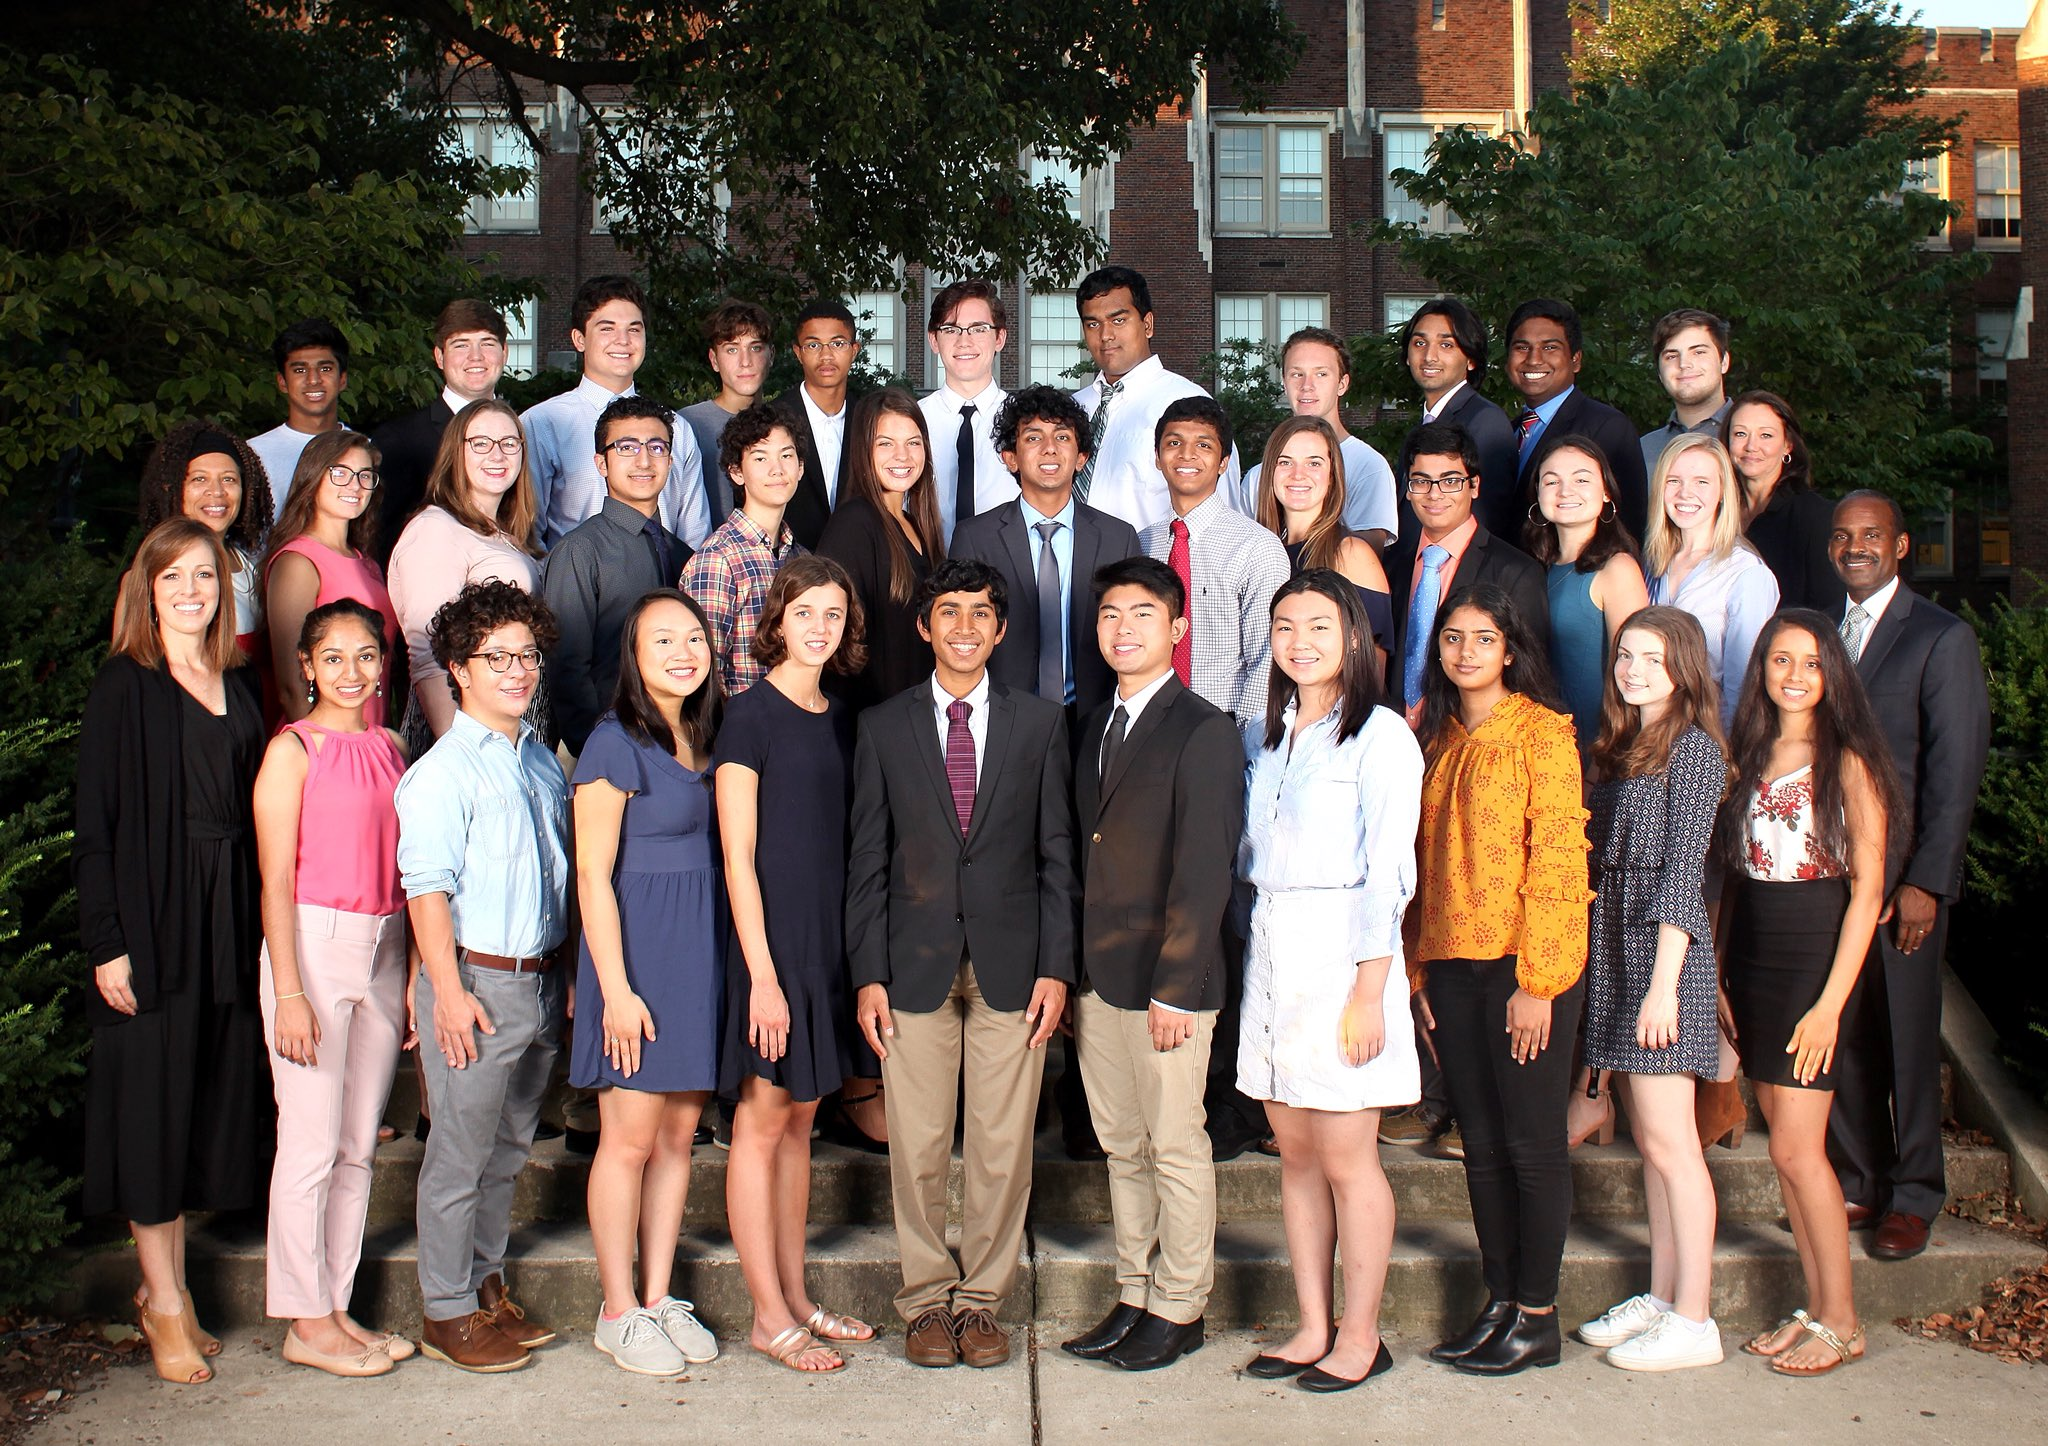 Congratulations to our 2019 National Merit Semi-Finalists